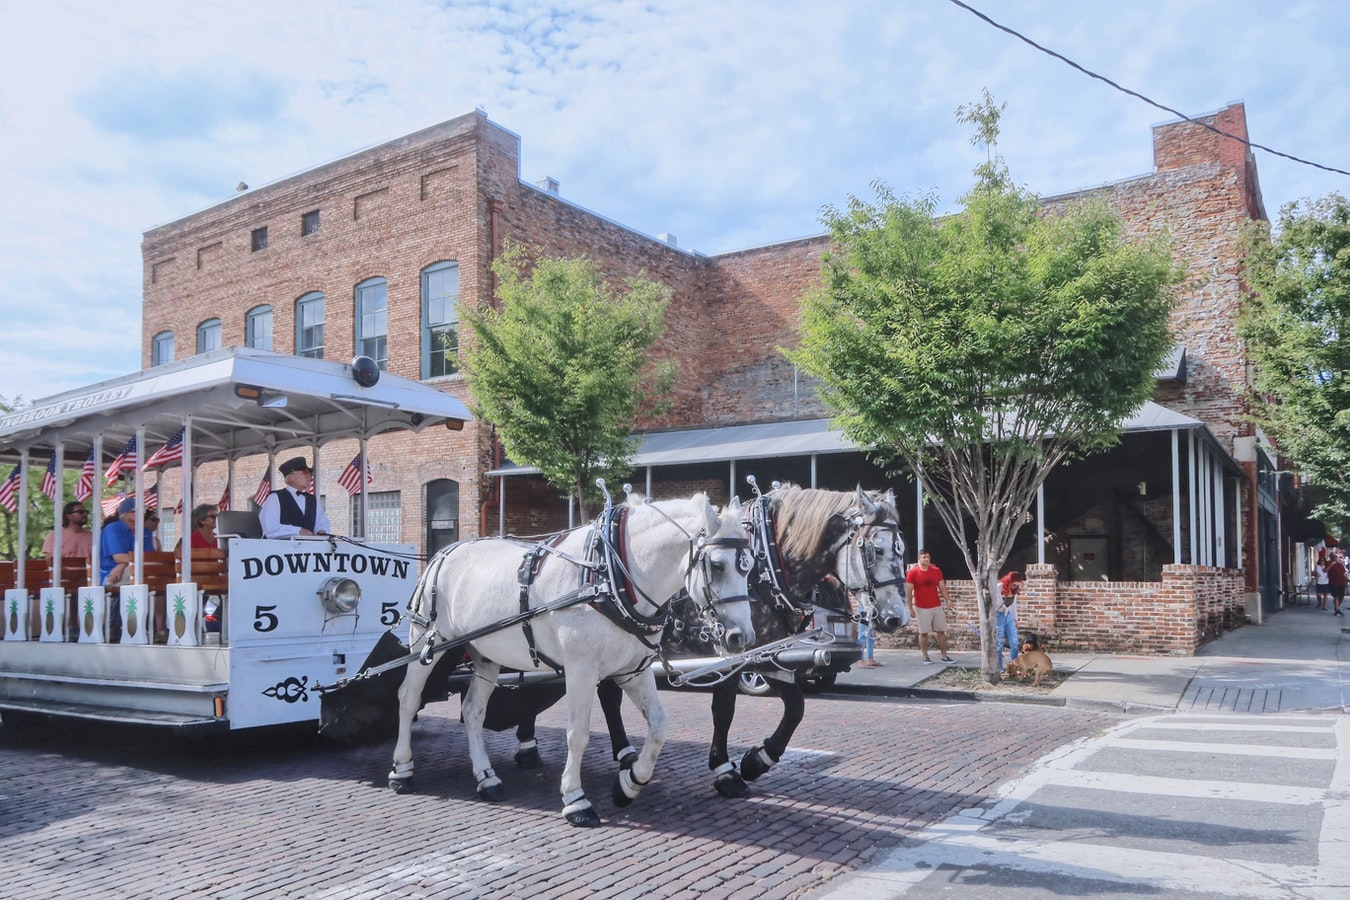 a horse-drawn cart being pulled through Wilmington, NC